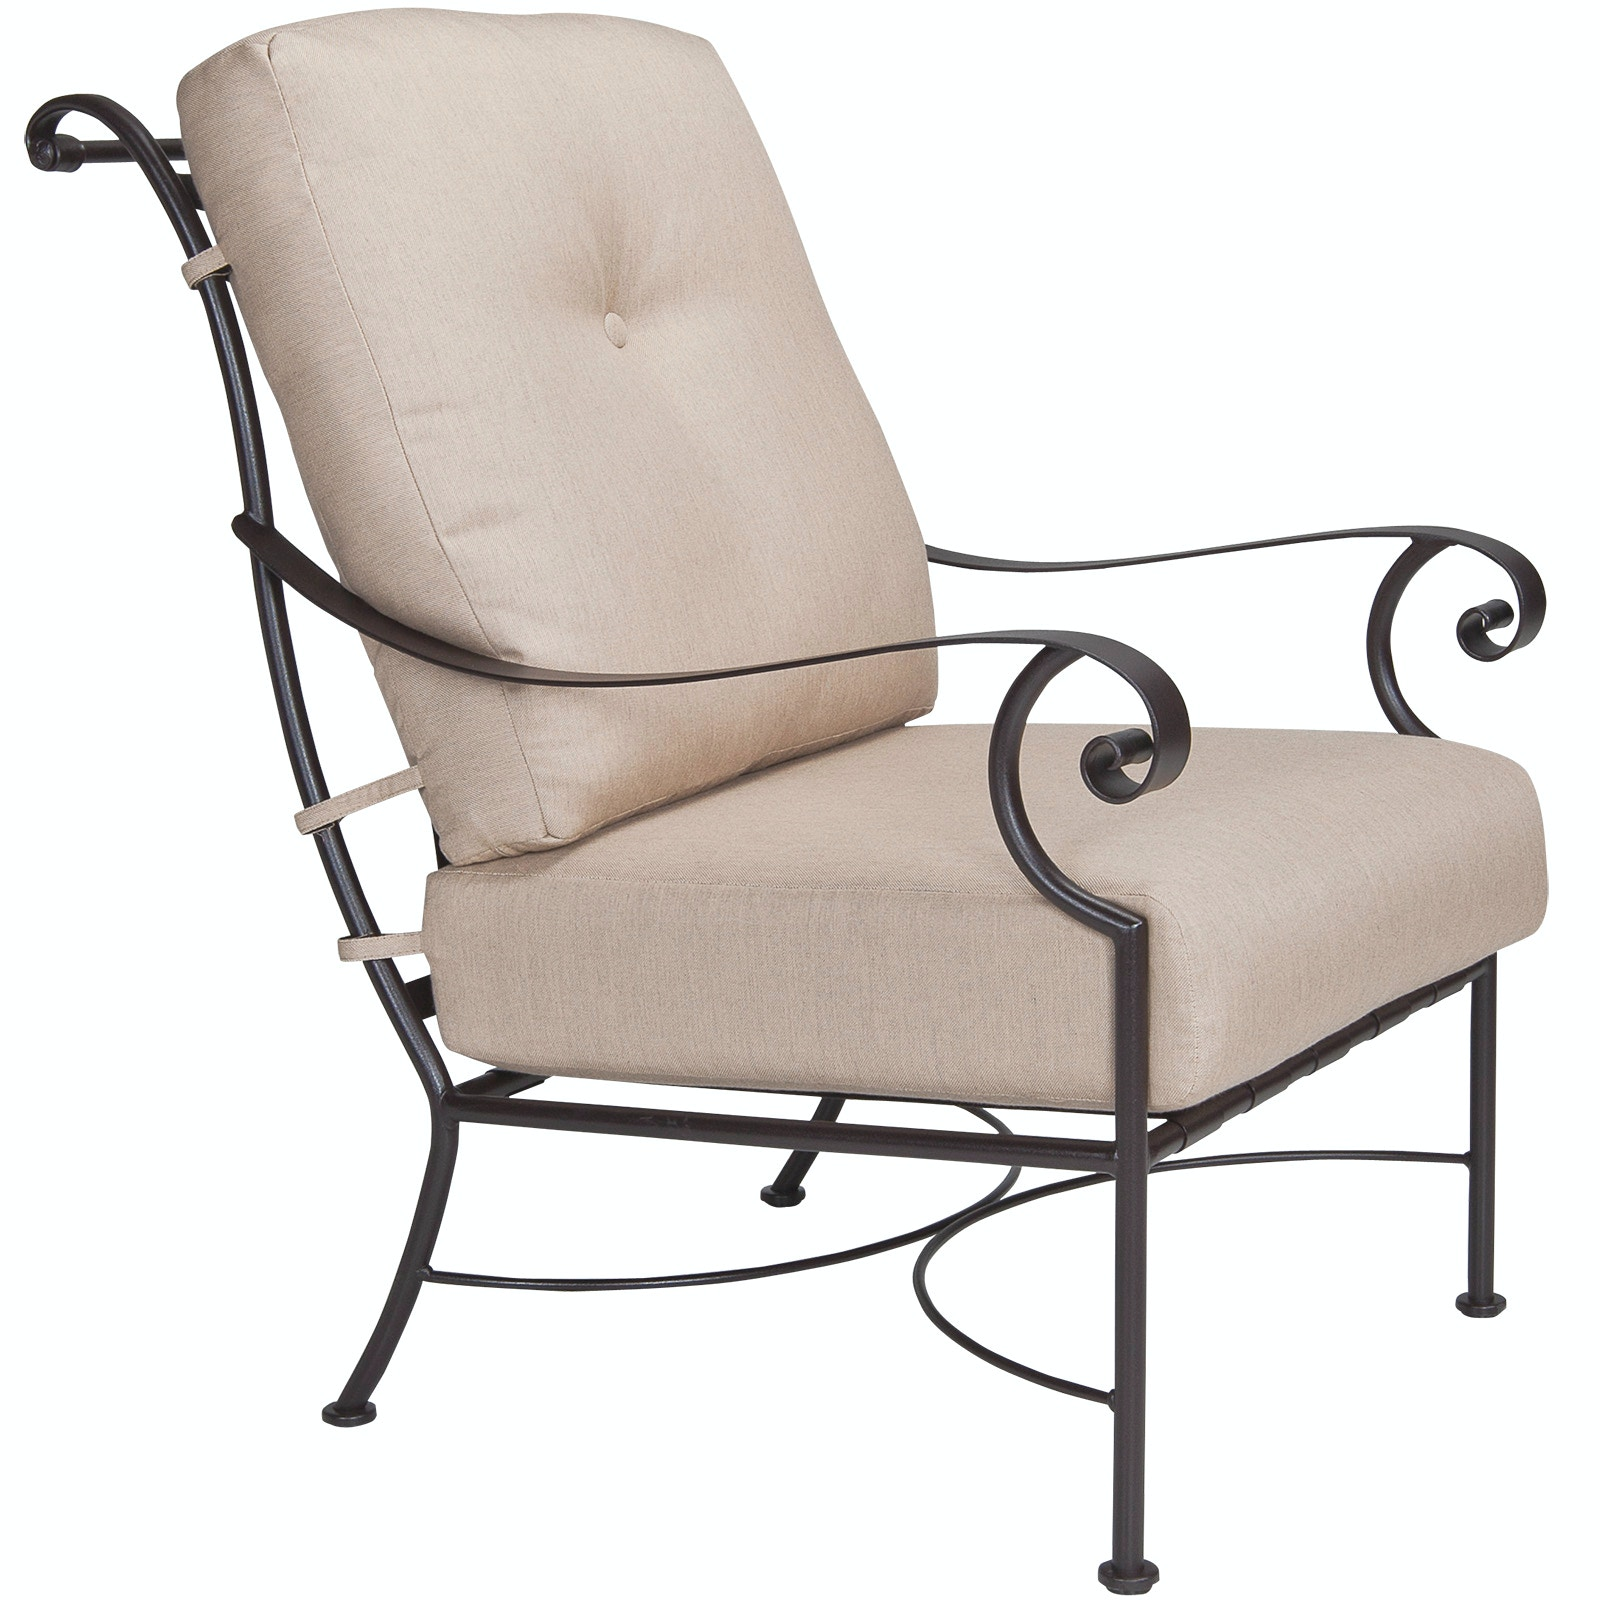 26125 CC. St. Charles Lounge Chair